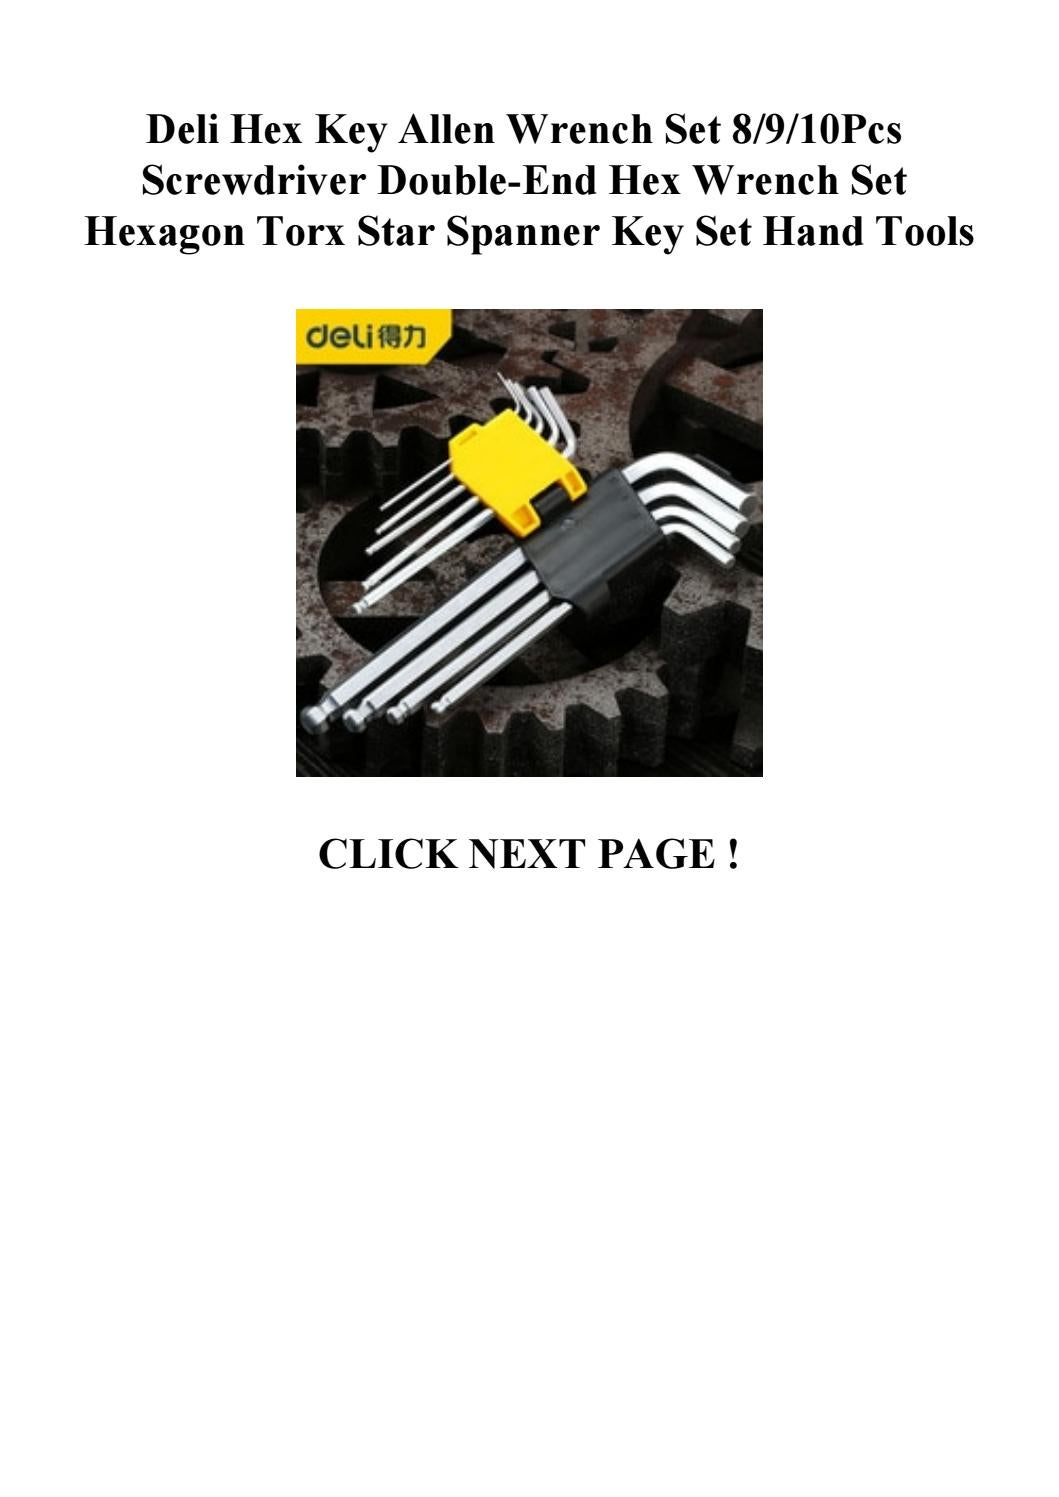 Deli Hex Key Allen Wrench Set 8910pcs Screwdriver Double End Hex Wrench Set Hexagon Torx Star Spa By Vxgdfrderx Issuu